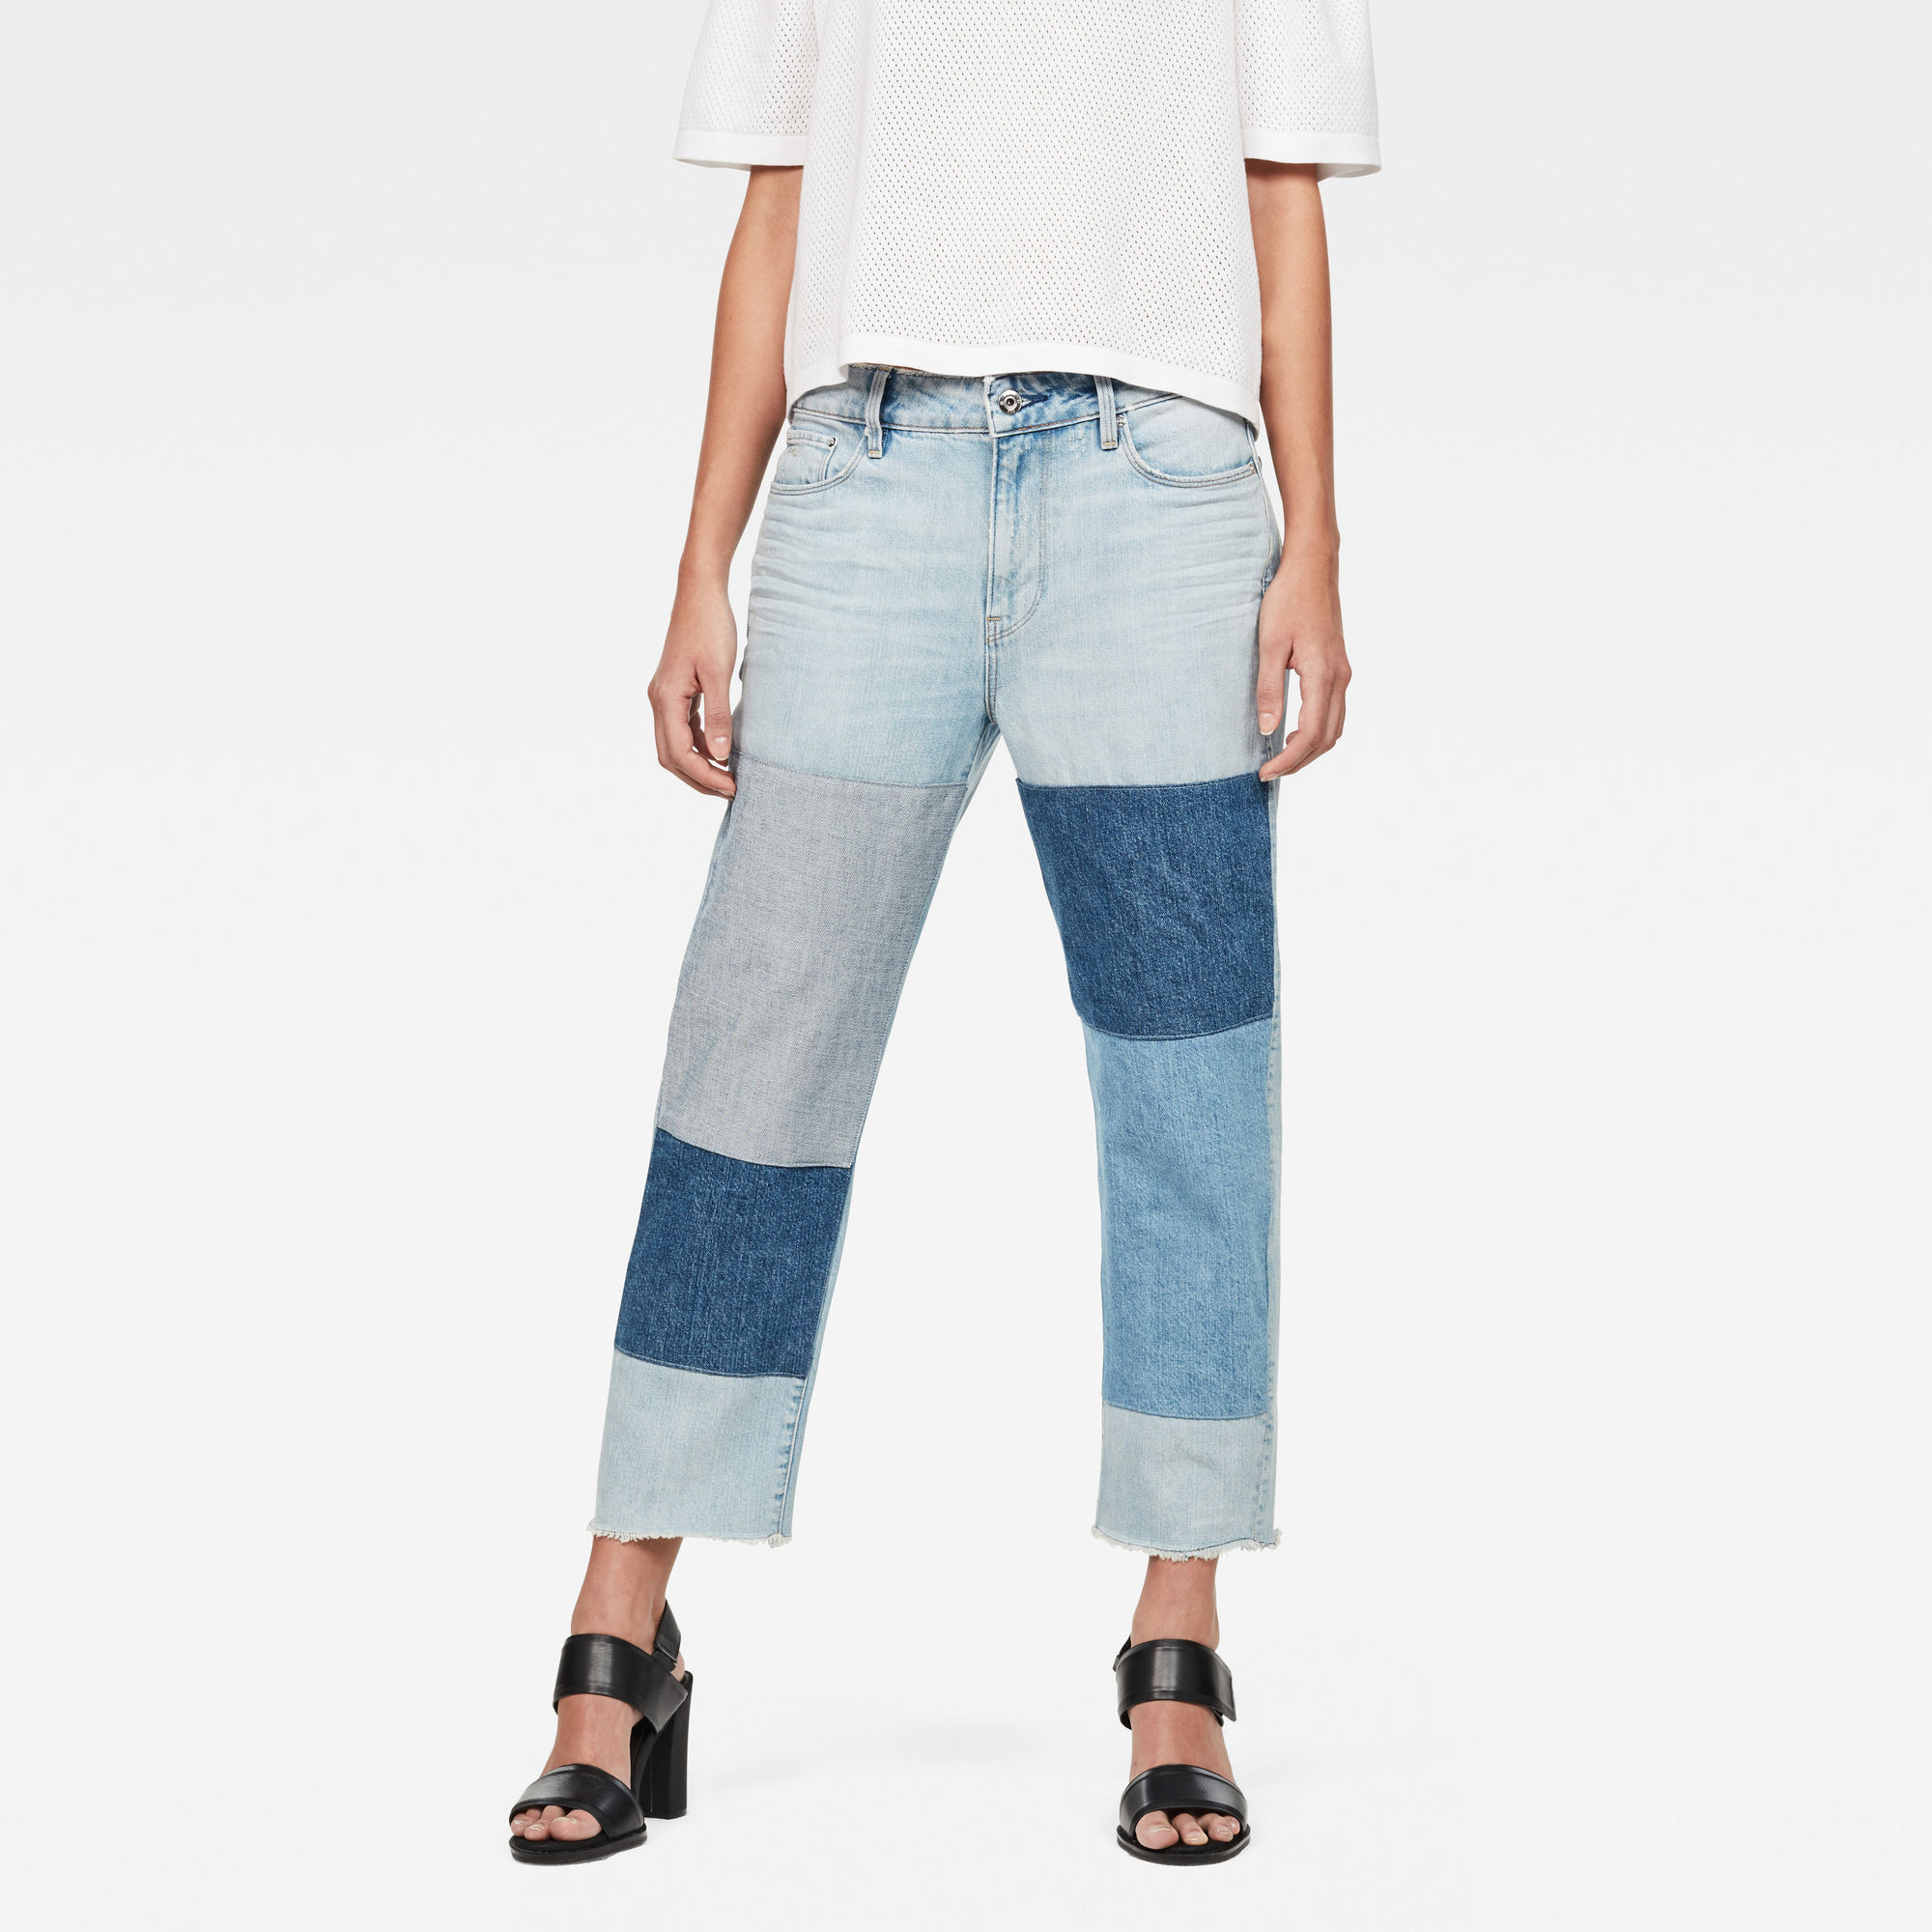 G-Star RAW Dames 3301 Mid waist Boyfriend Ripped 7/8-Length Jeans Light Aged Patched